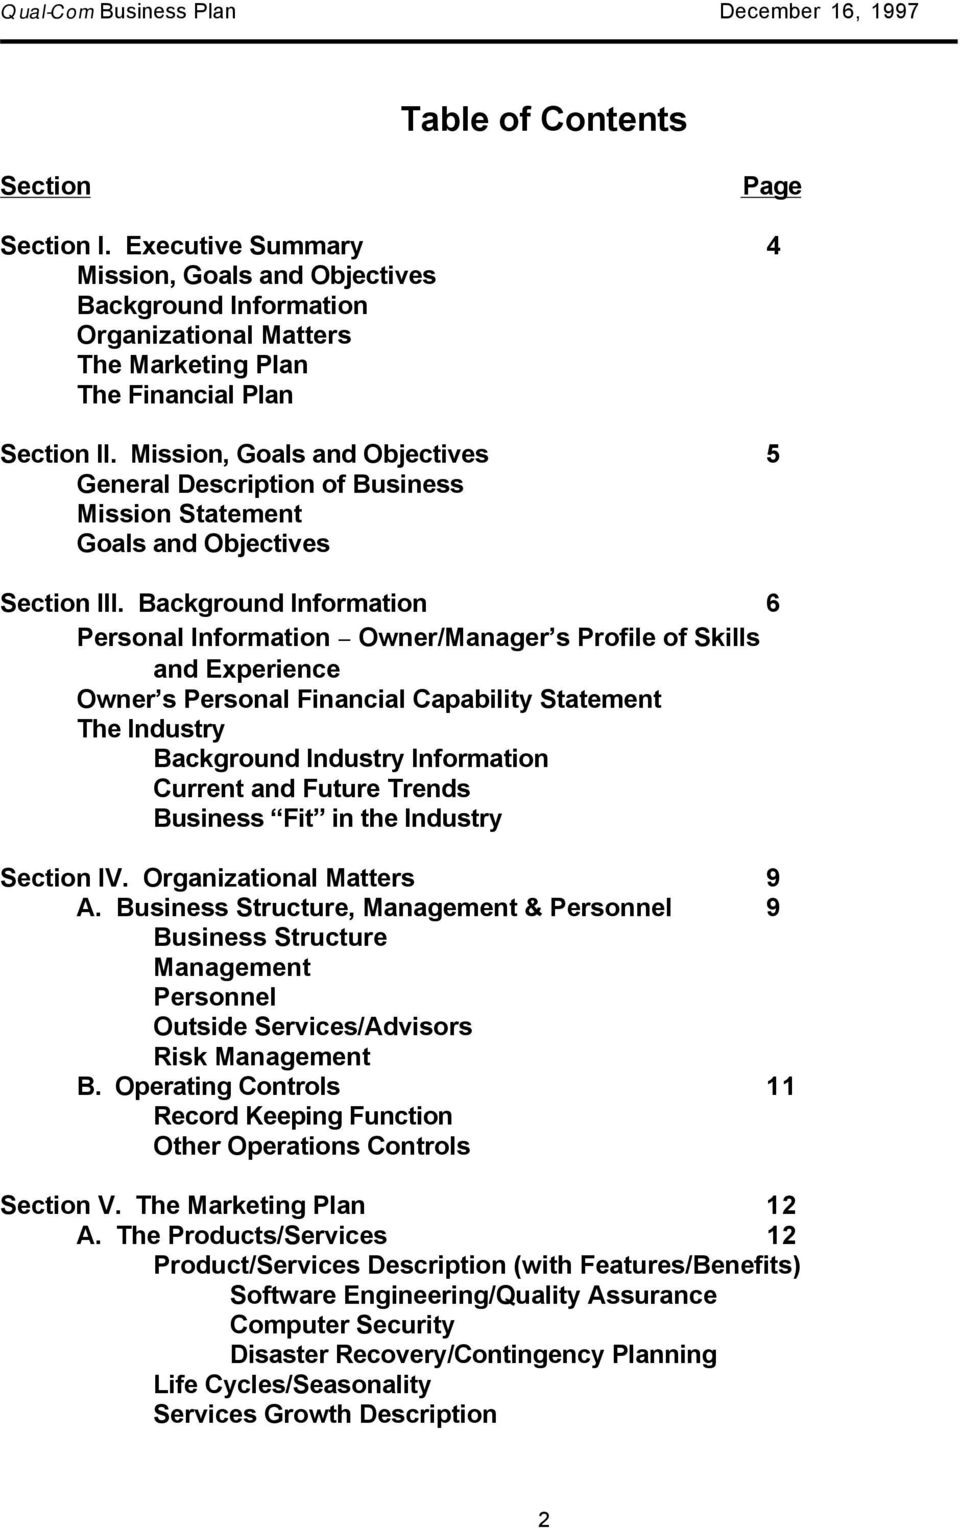 Background Information 6 Personal Information - Owner/ManagerÕs Profile of Skills and Experience OwnerÕs Personal Financial Capability Statement The Industry Background Industry Information Current